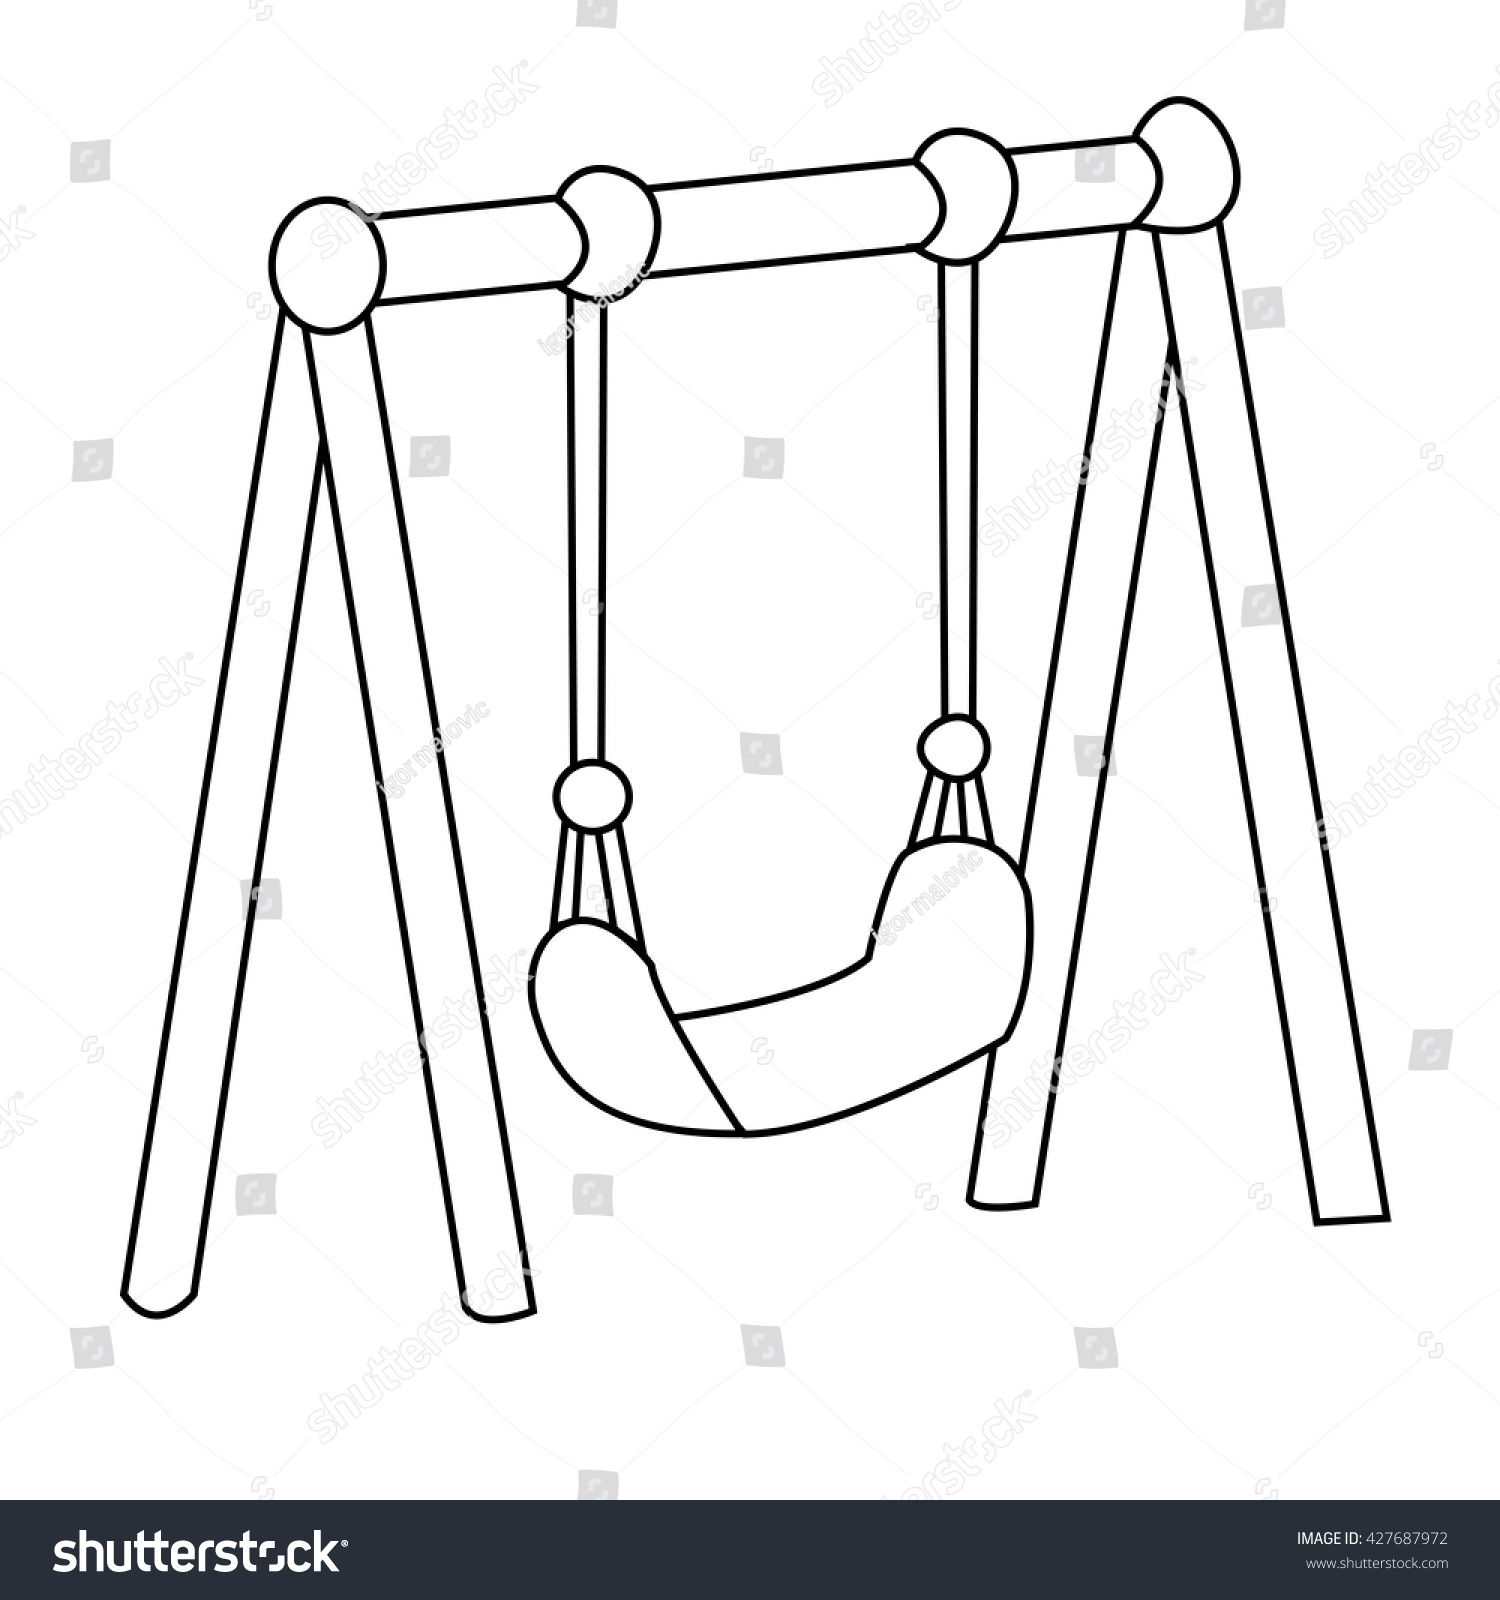 Swing clipart black and white 3 » Clipart Station.